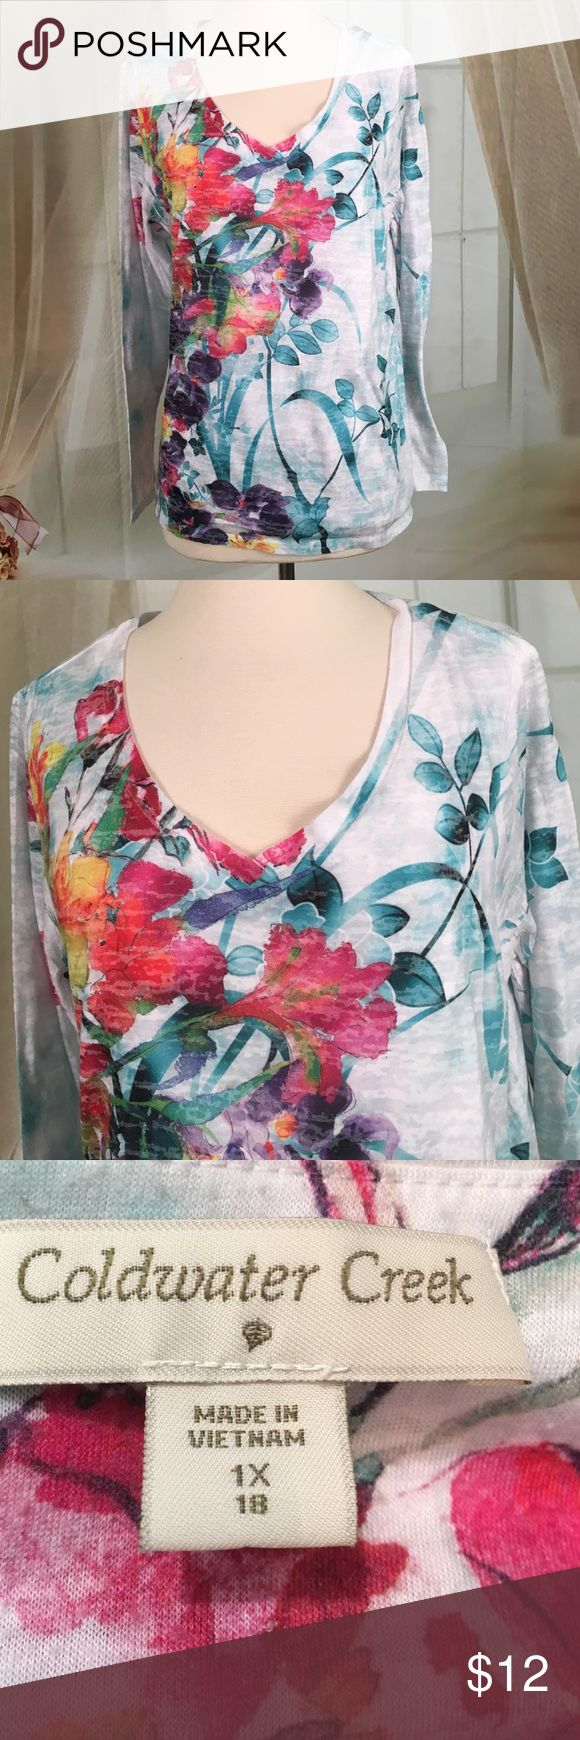 "Coldwater Creek Floral Long Sleeved Top Very nice floral long sleeve top. Fully lined. 76% polyester and 24% cotton. Great condition. Size 1X.  Bust 42 and length 25"".  Reasonable offers welcomed.  TP21 Coldwater Creek Tops"